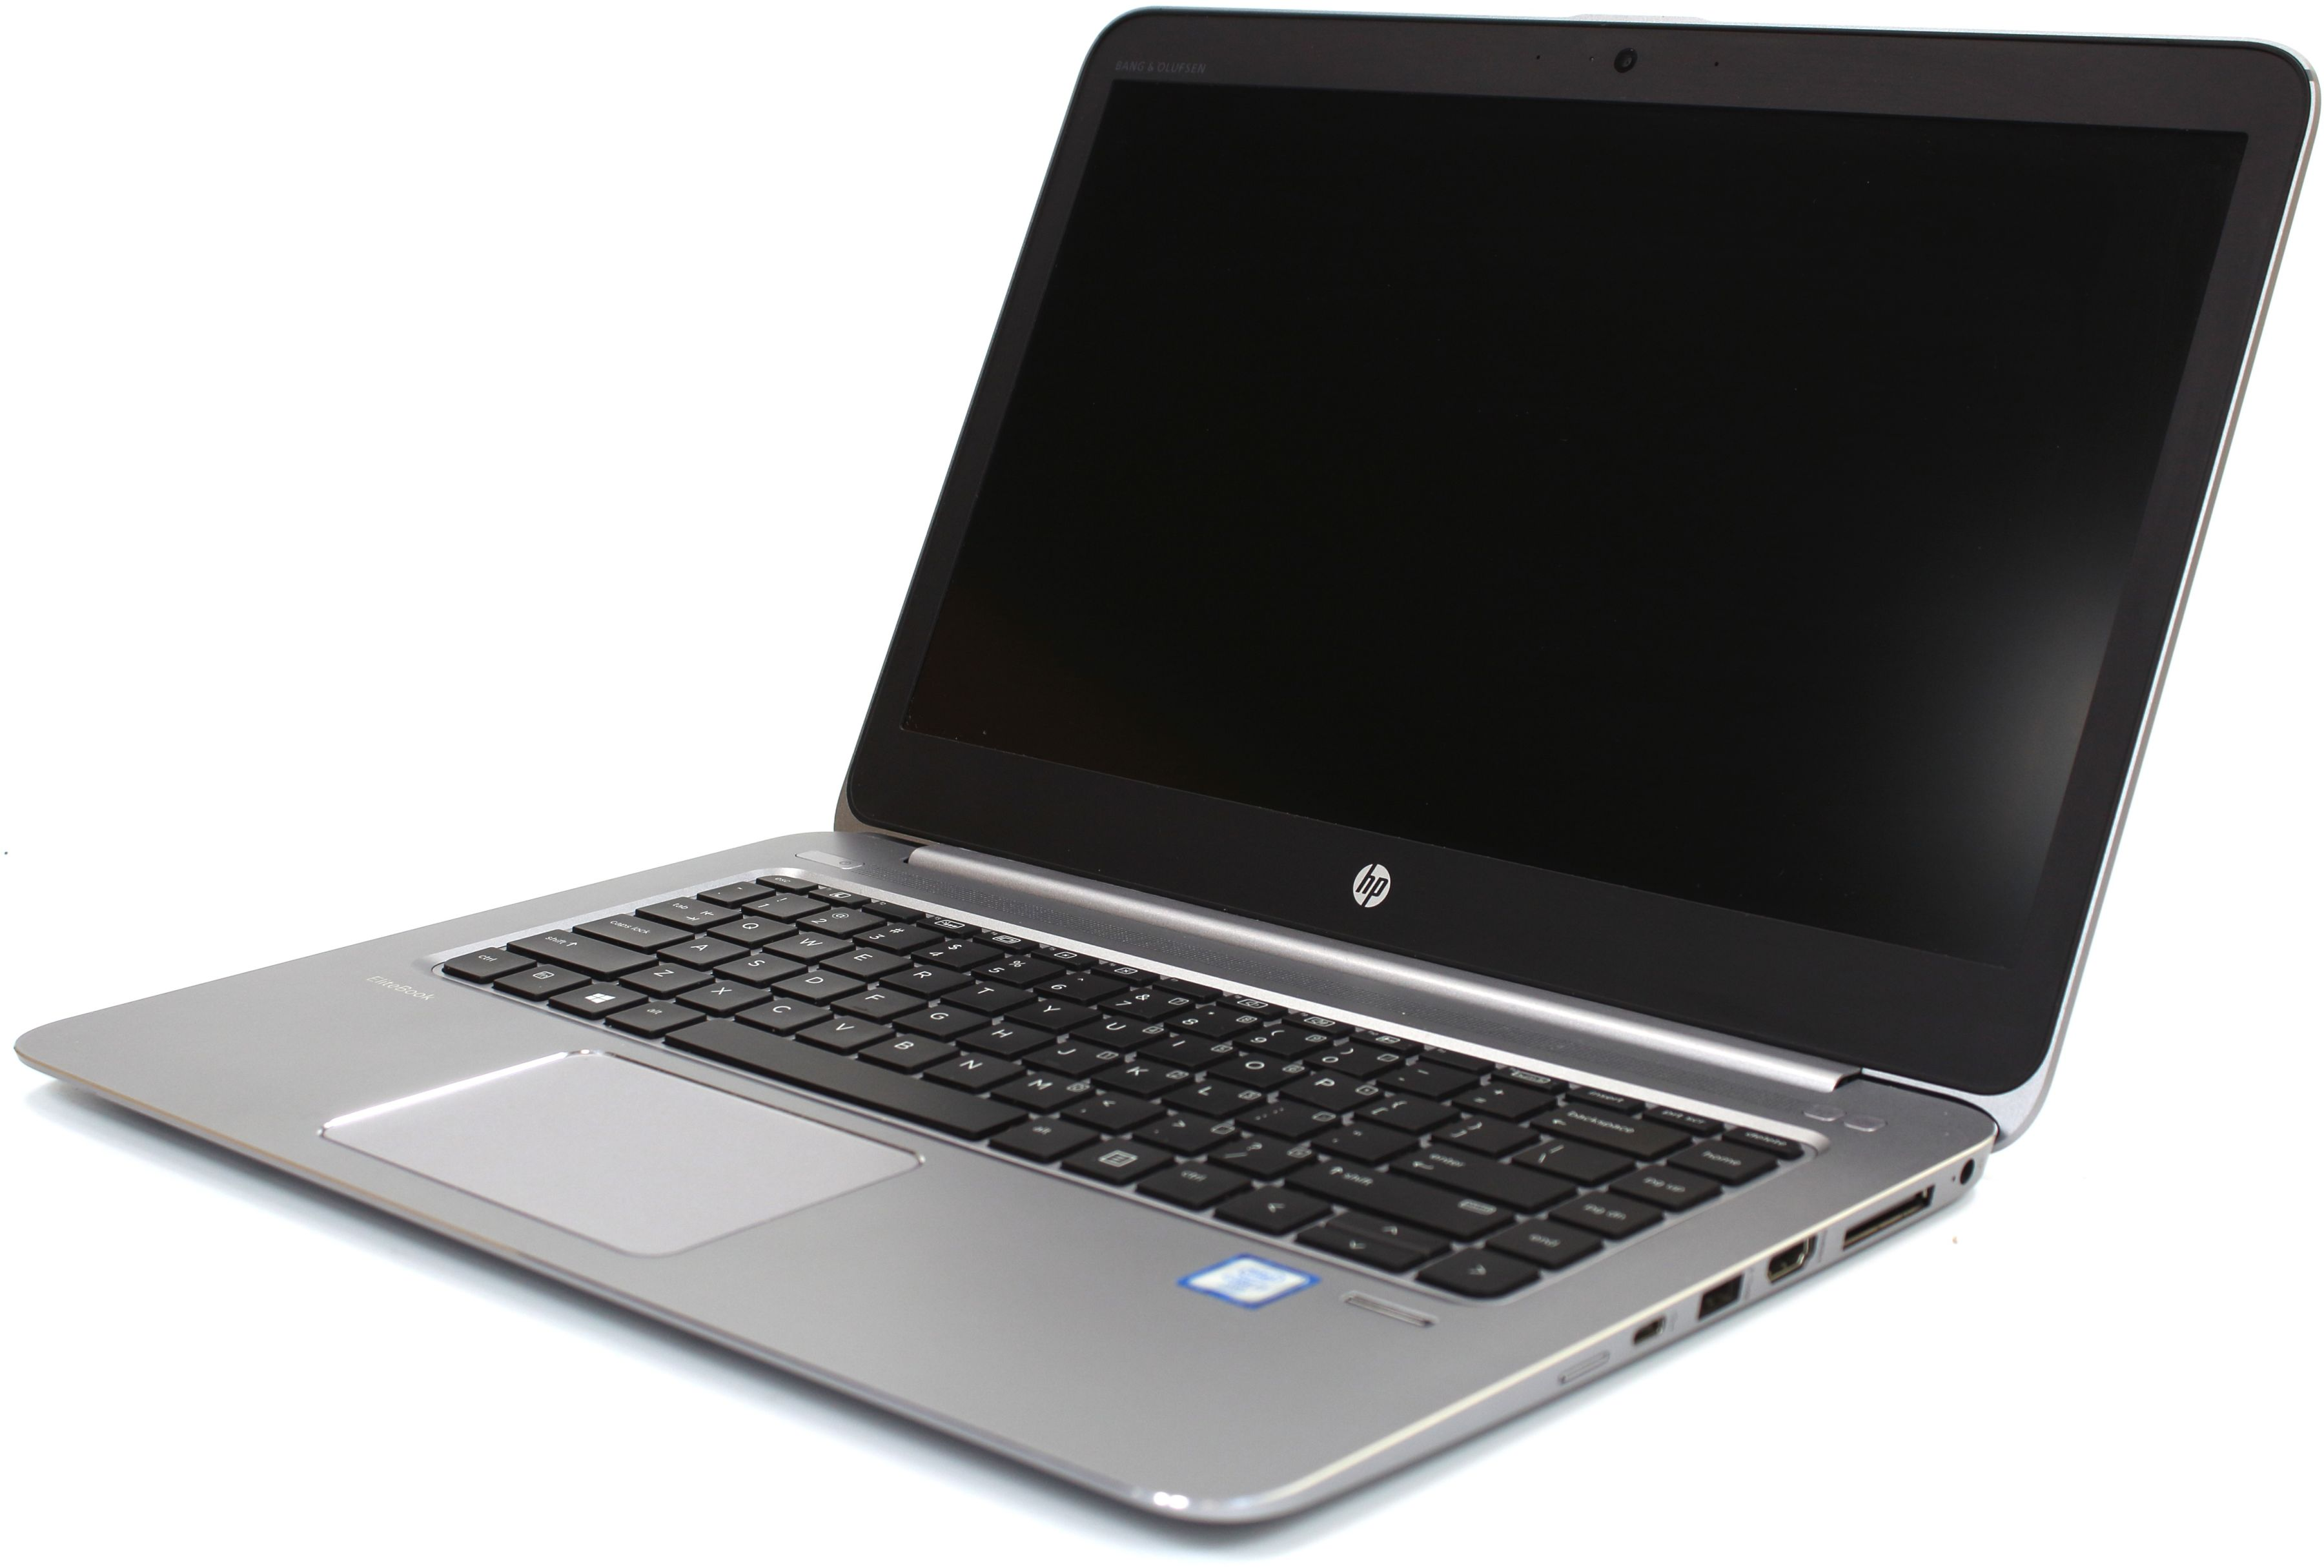 "UltraBook HP Folio 1040 G3 14.1"" FHD i7-6600U 8GB 256GB SSD KAMERA Windows 7/8/10 Pro (Klasa A-)"